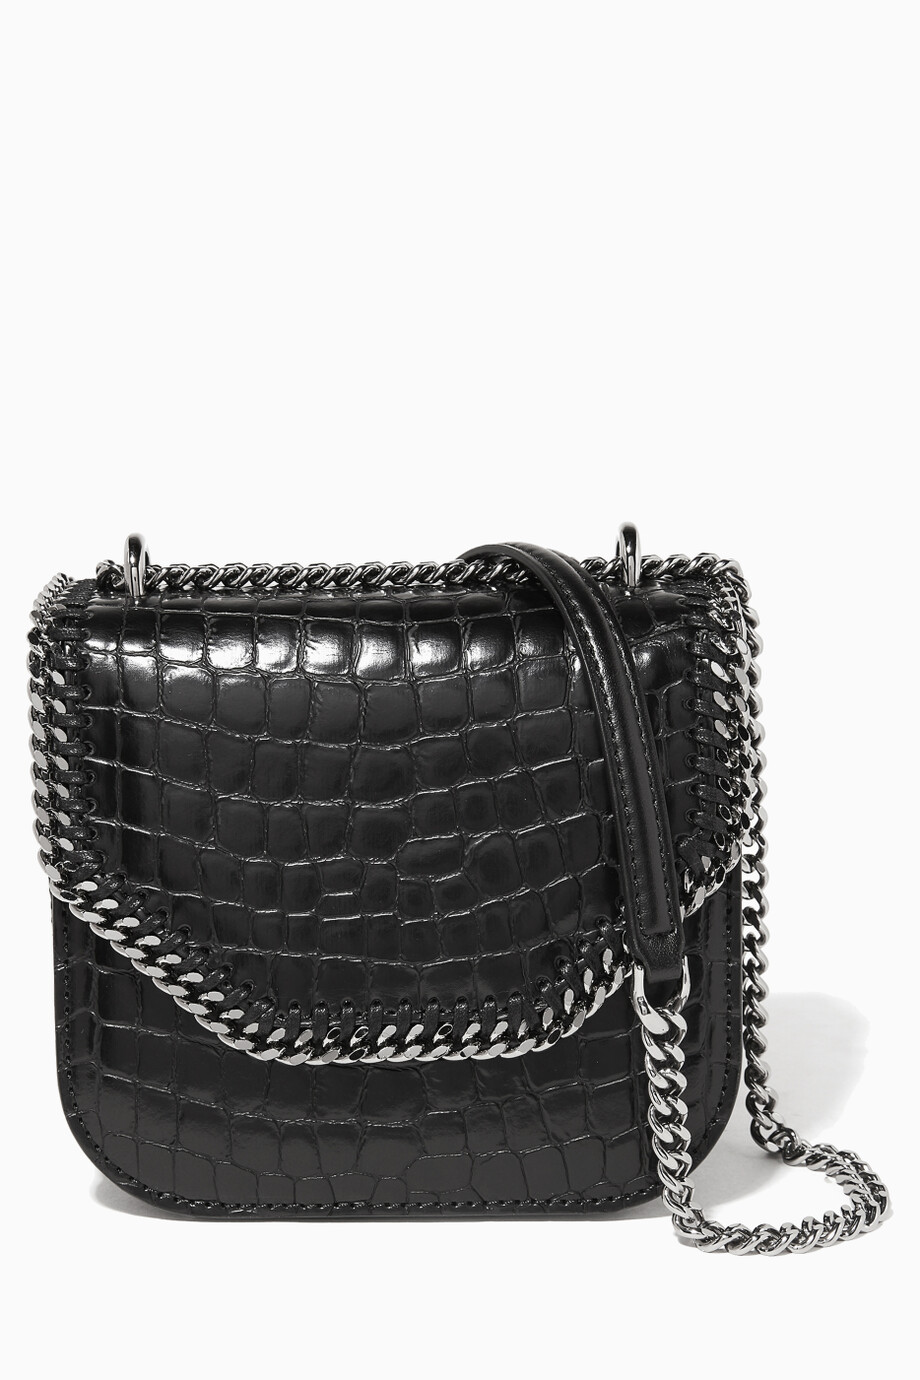 cd1bdec54815 Shop Stella McCartney Black Black Alter-Croc Mini Falabella Box ...